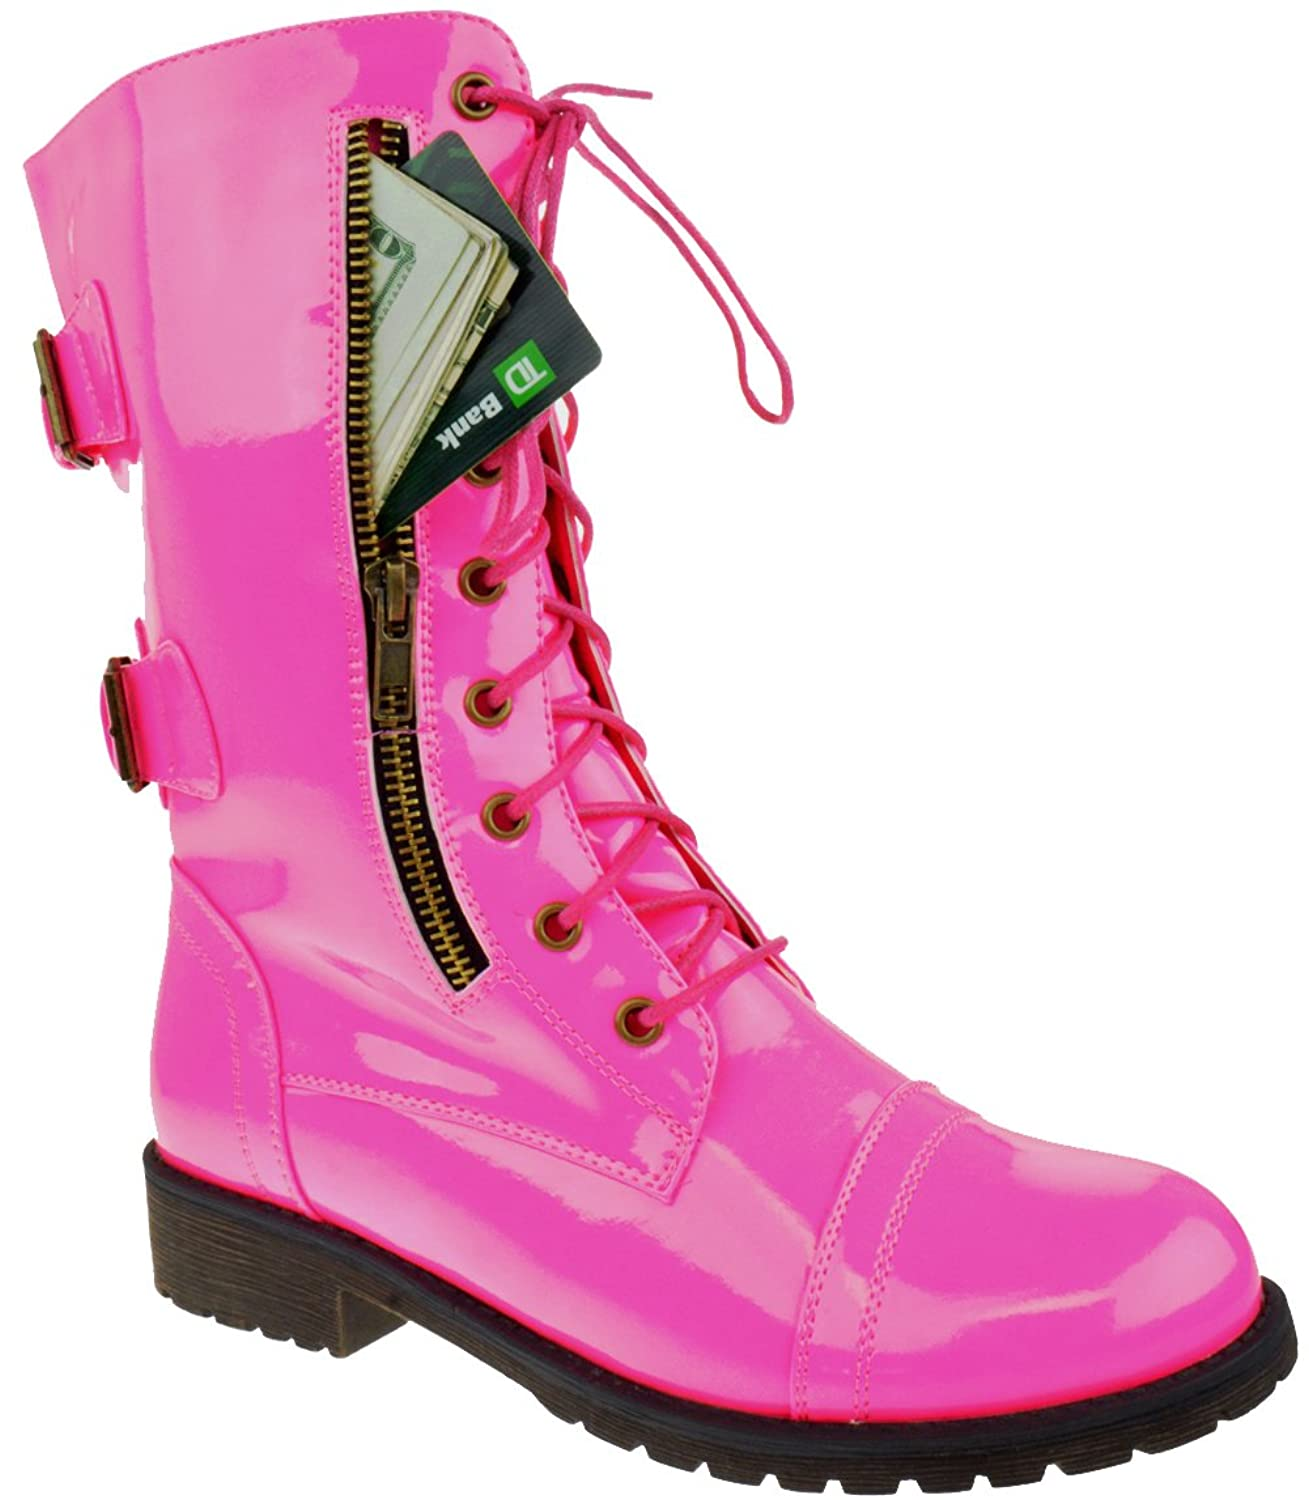 Docc 88 Womens Patent Combat Lace Up Buckle Functional Zipper Pocket Boots Pink